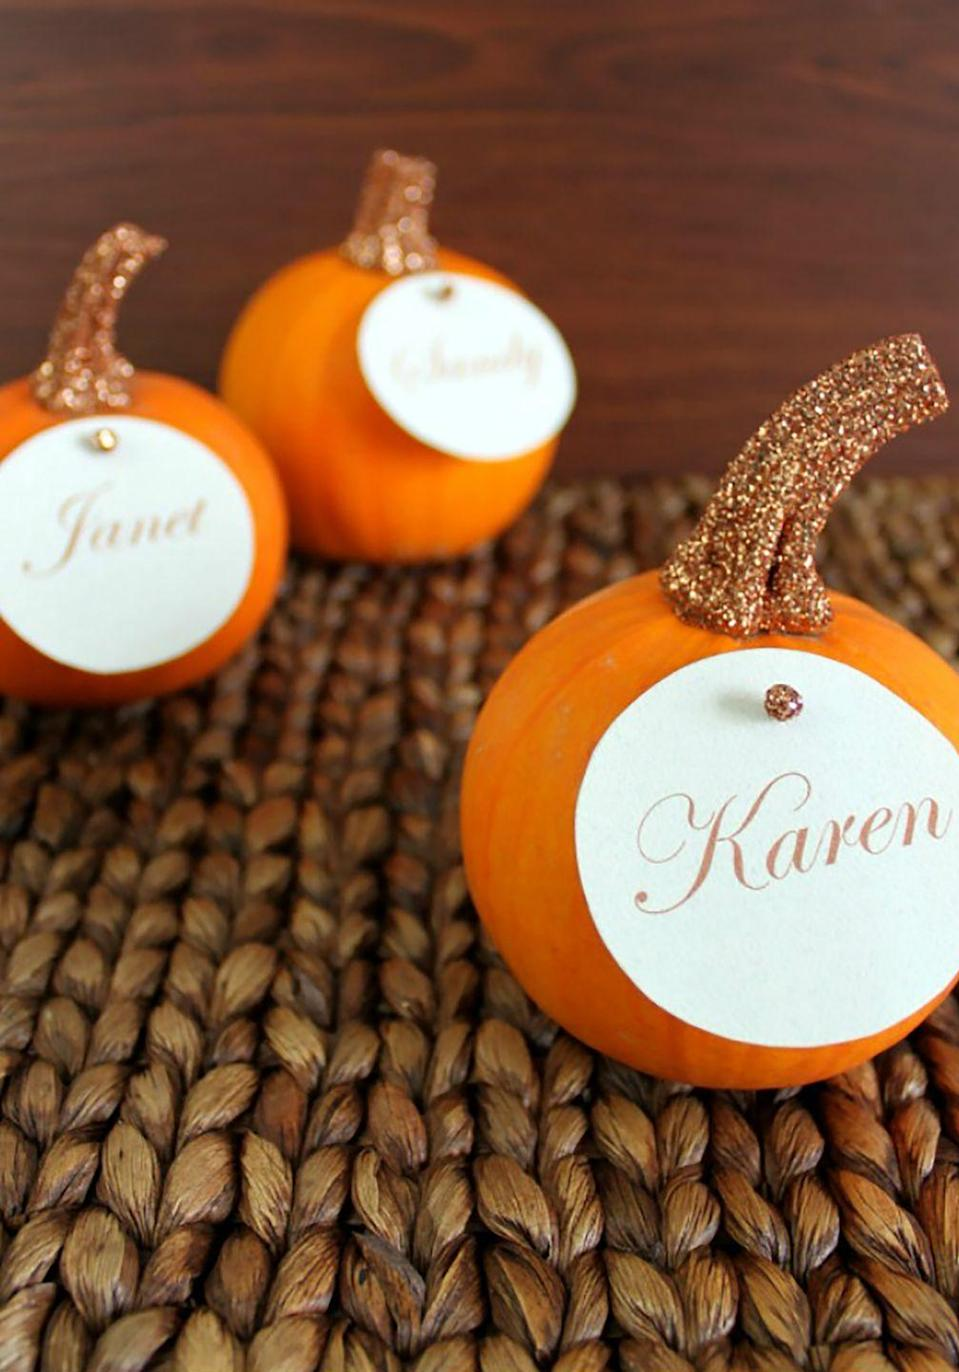 "<p>With just a little bit of glue and glitter, you can spruce up mini pumpkins to make adorable table place cards. </p><p><strong>Get the tutorial at <a href=""https://www.ohmy-creative.com/holiday-crafts/thanksgiving/glitter-top-pumpkin-place-cards/"" rel=""nofollow noopener"" target=""_blank"" data-ylk=""slk:Oh My! Creative"" class=""link rapid-noclick-resp"">Oh My! Creative</a>. </strong></p><p><strong><a class=""link rapid-noclick-resp"" href=""https://www.amazon.com/American-Crafts-Glitter-Extra-Chocolate/dp/B00785X37C/?tag=syn-yahoo-20&ascsubtag=%5Bartid%7C10050.g.1538%5Bsrc%7Cyahoo-us"" rel=""nofollow noopener"" target=""_blank"" data-ylk=""slk:SHOP CRAFT GLITTER"">SHOP CRAFT GLITTER</a></strong></p>"